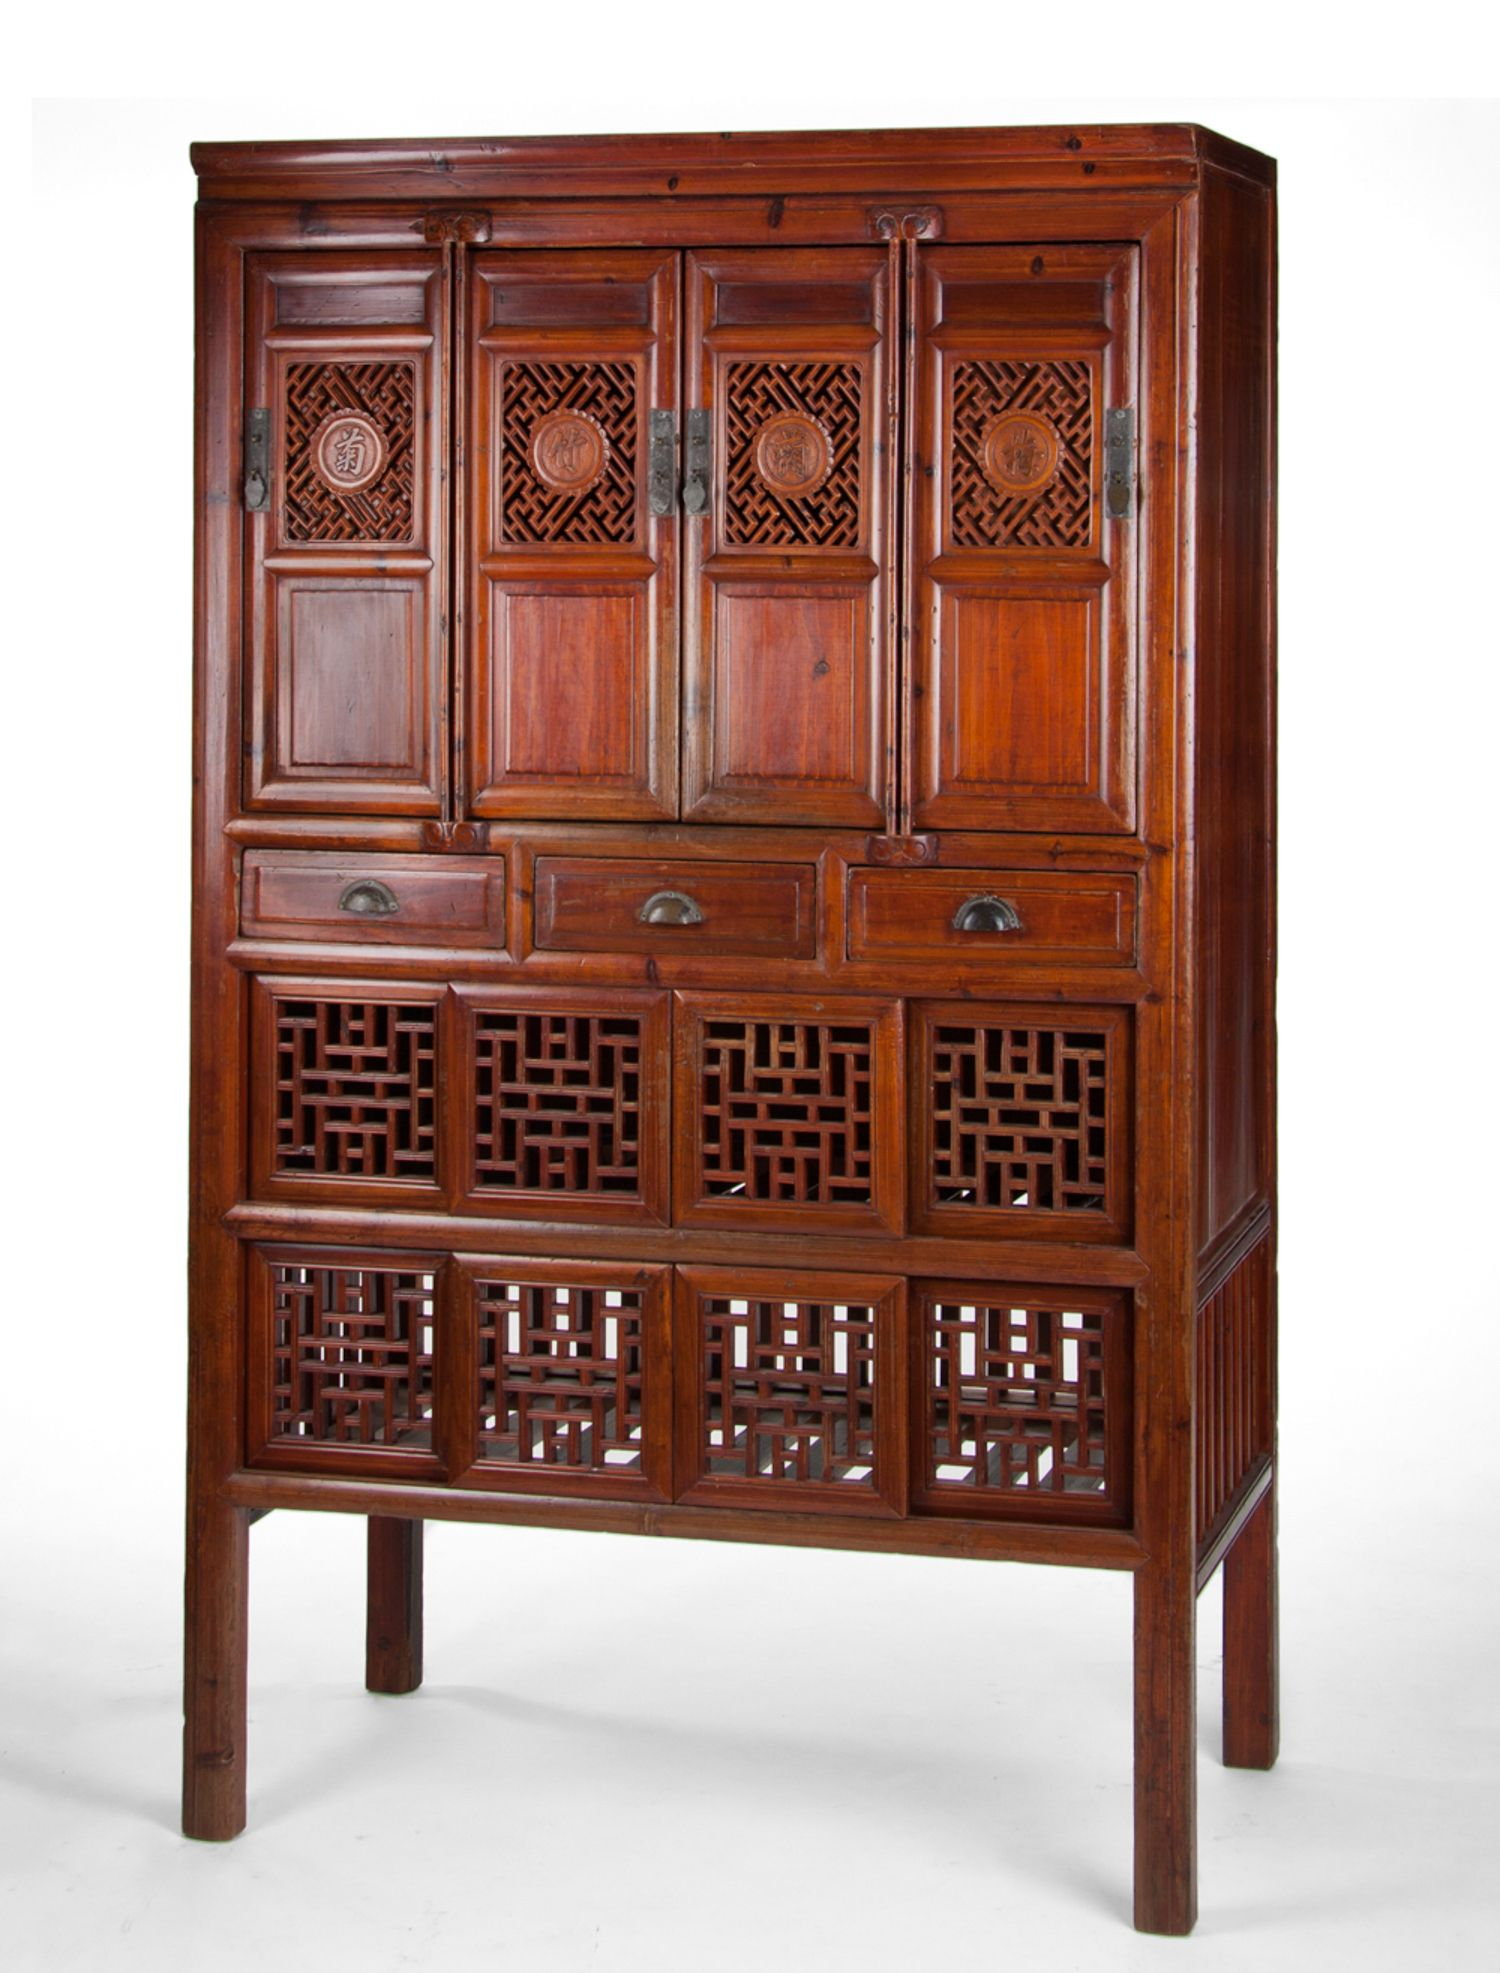 Early 20th century kitchen cabinet Kitchen cabinets were an